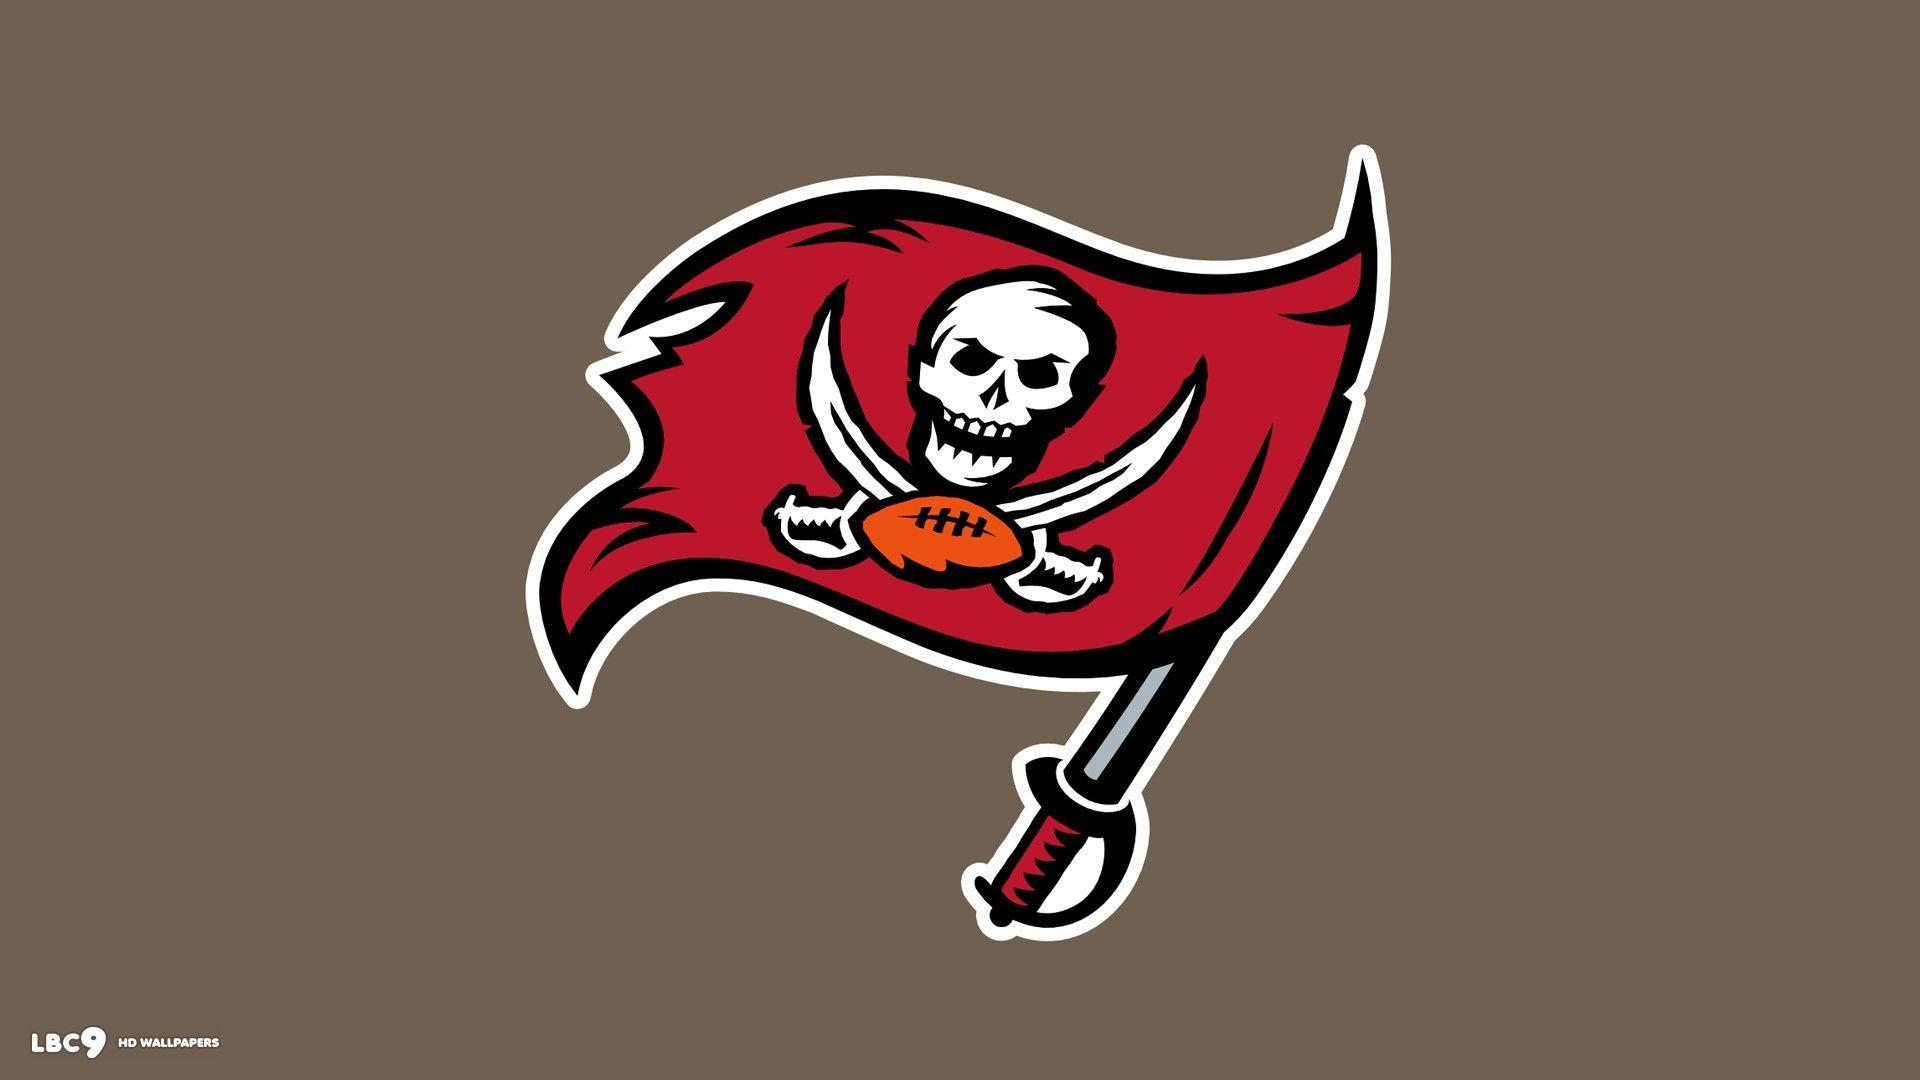 tampa bay buccaneers wallpaper 5/5 | nfl teams hd backgrounds